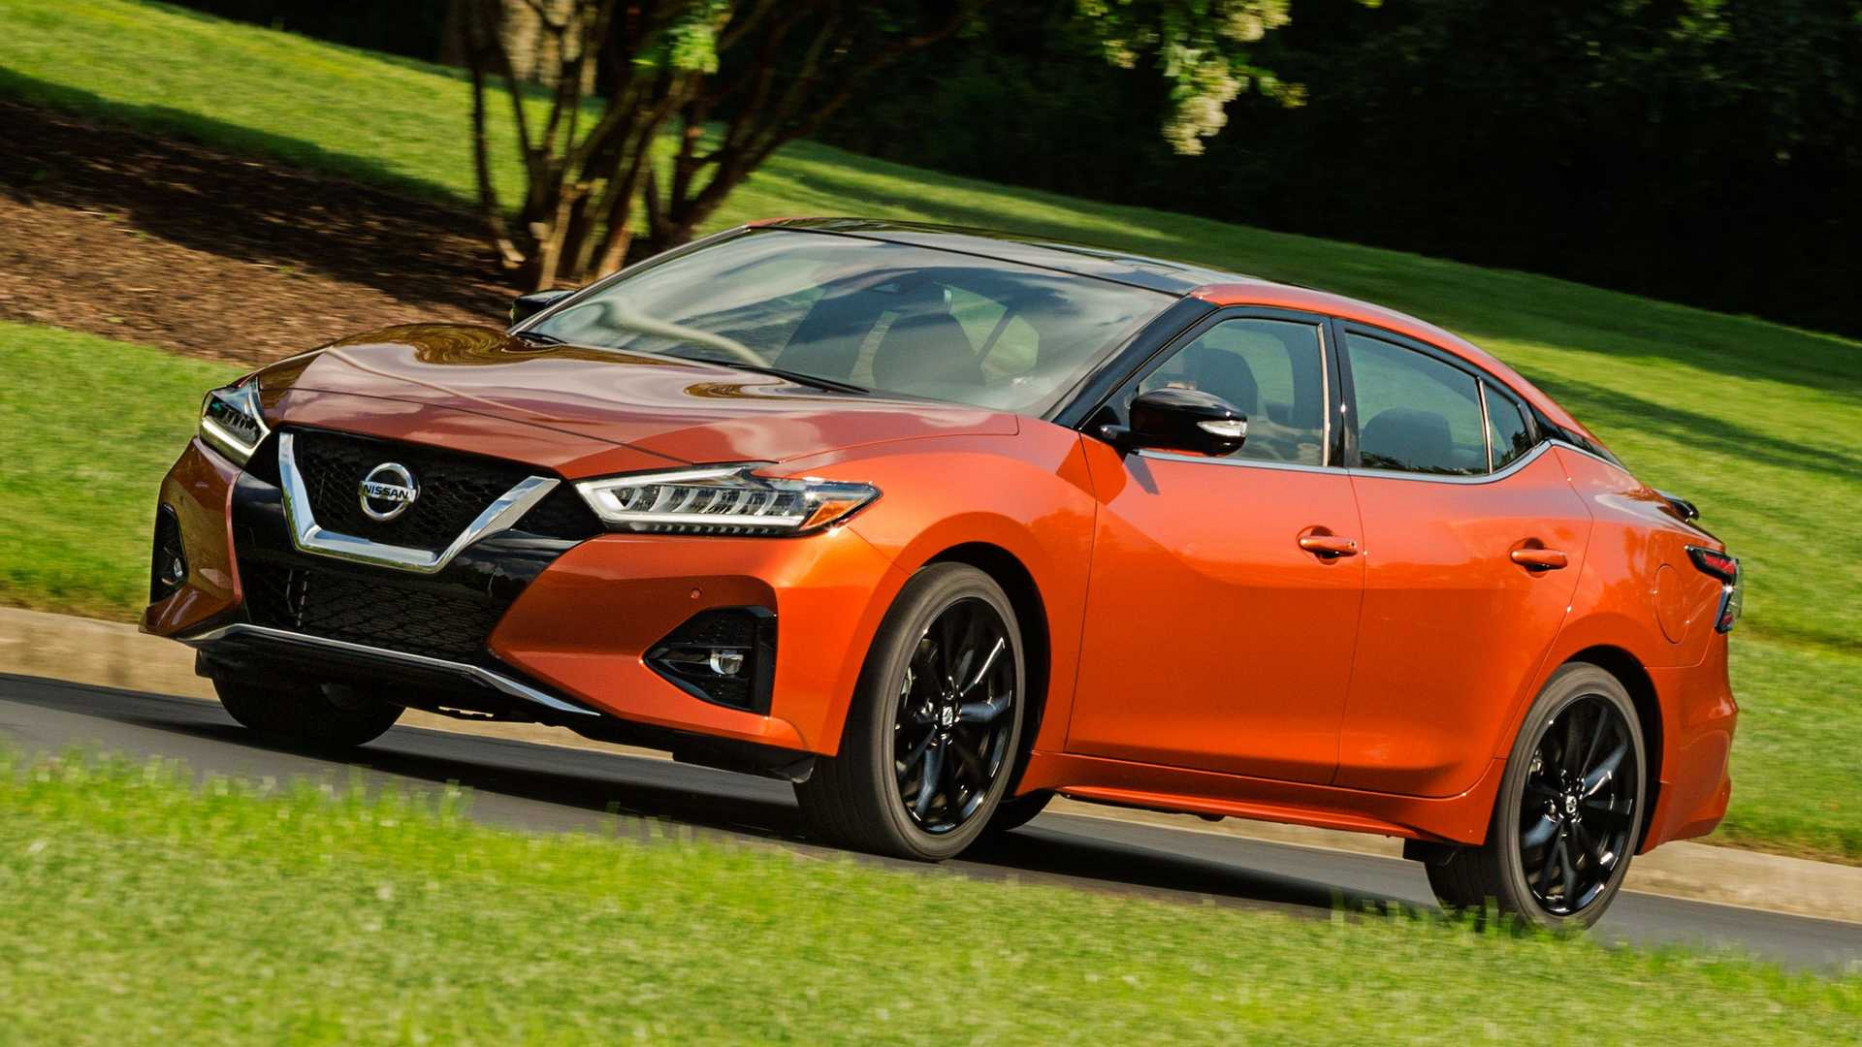 First Drive When Does The 2022 Nissan Maxima Come Out